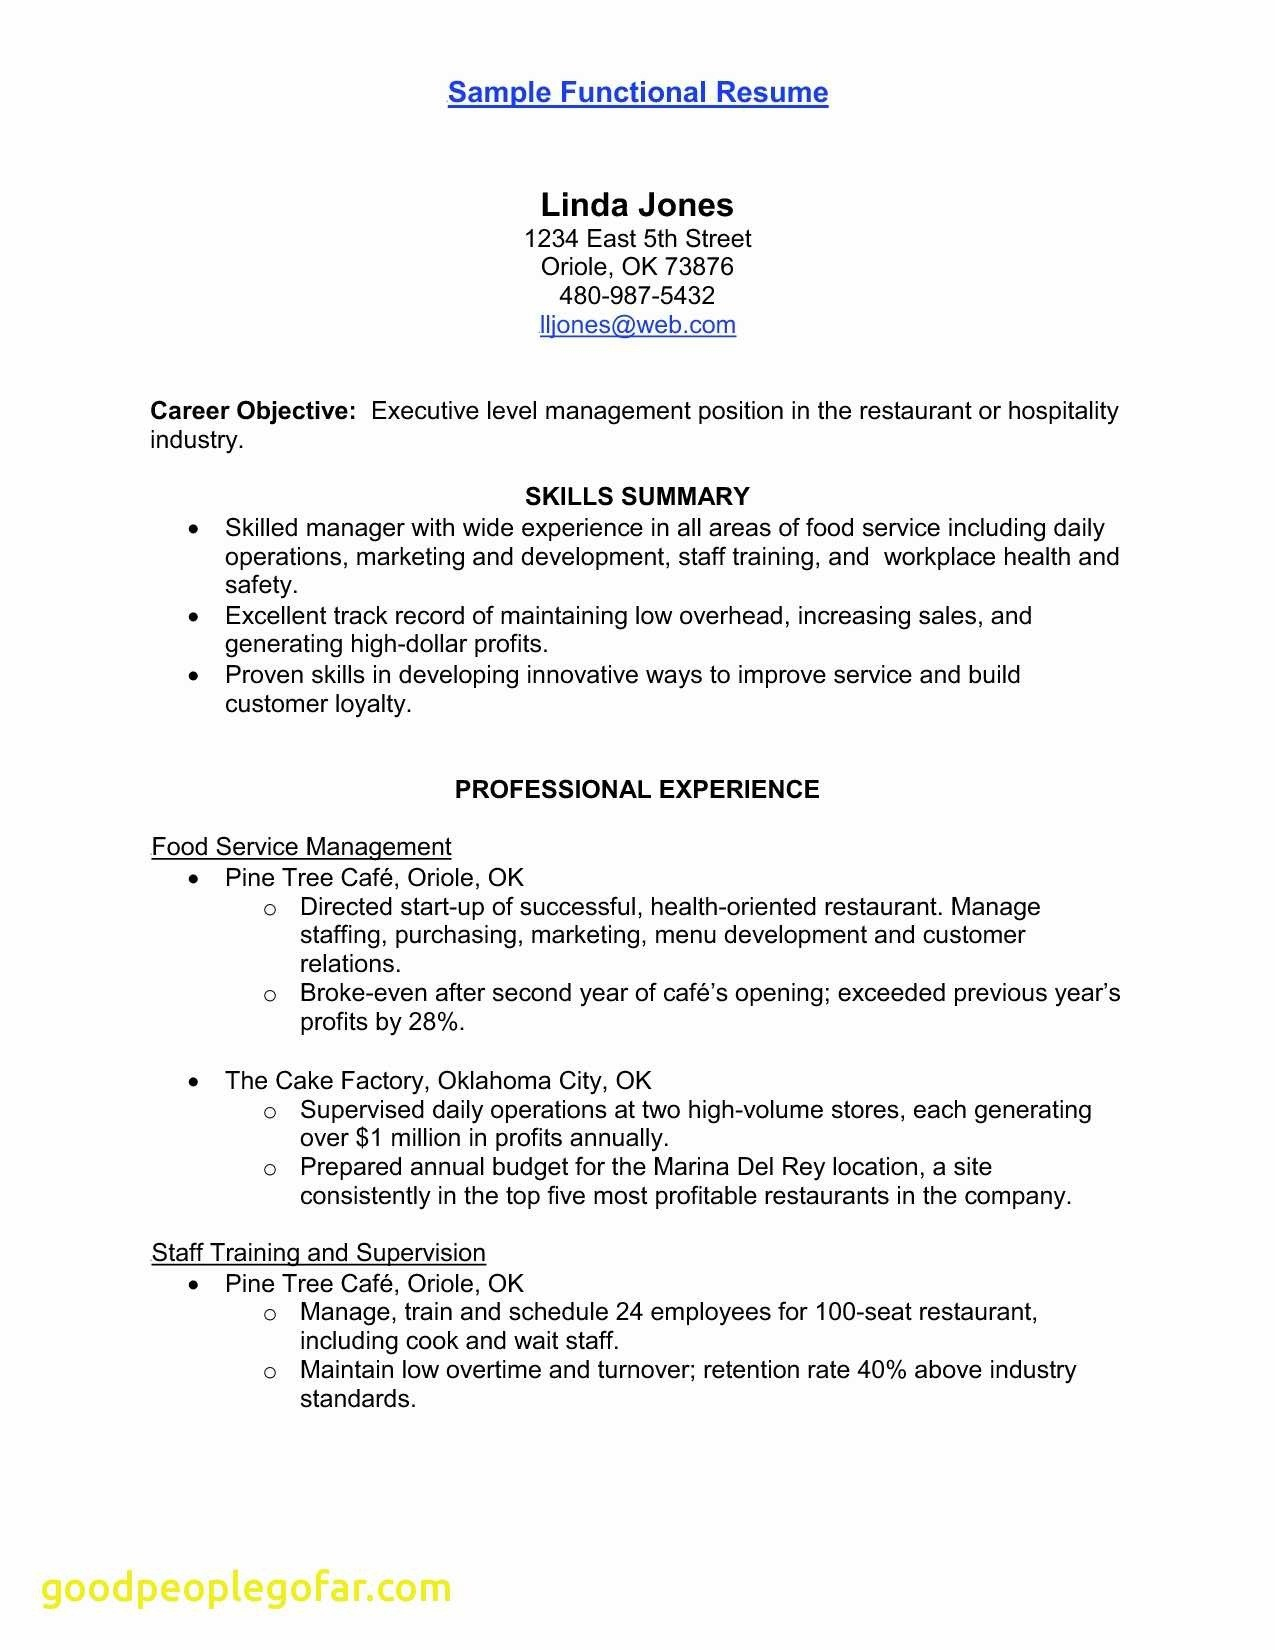 Marketing Skills Resume - Marketing Skills Resume Unique Elegant Languages Resume Fresh Point